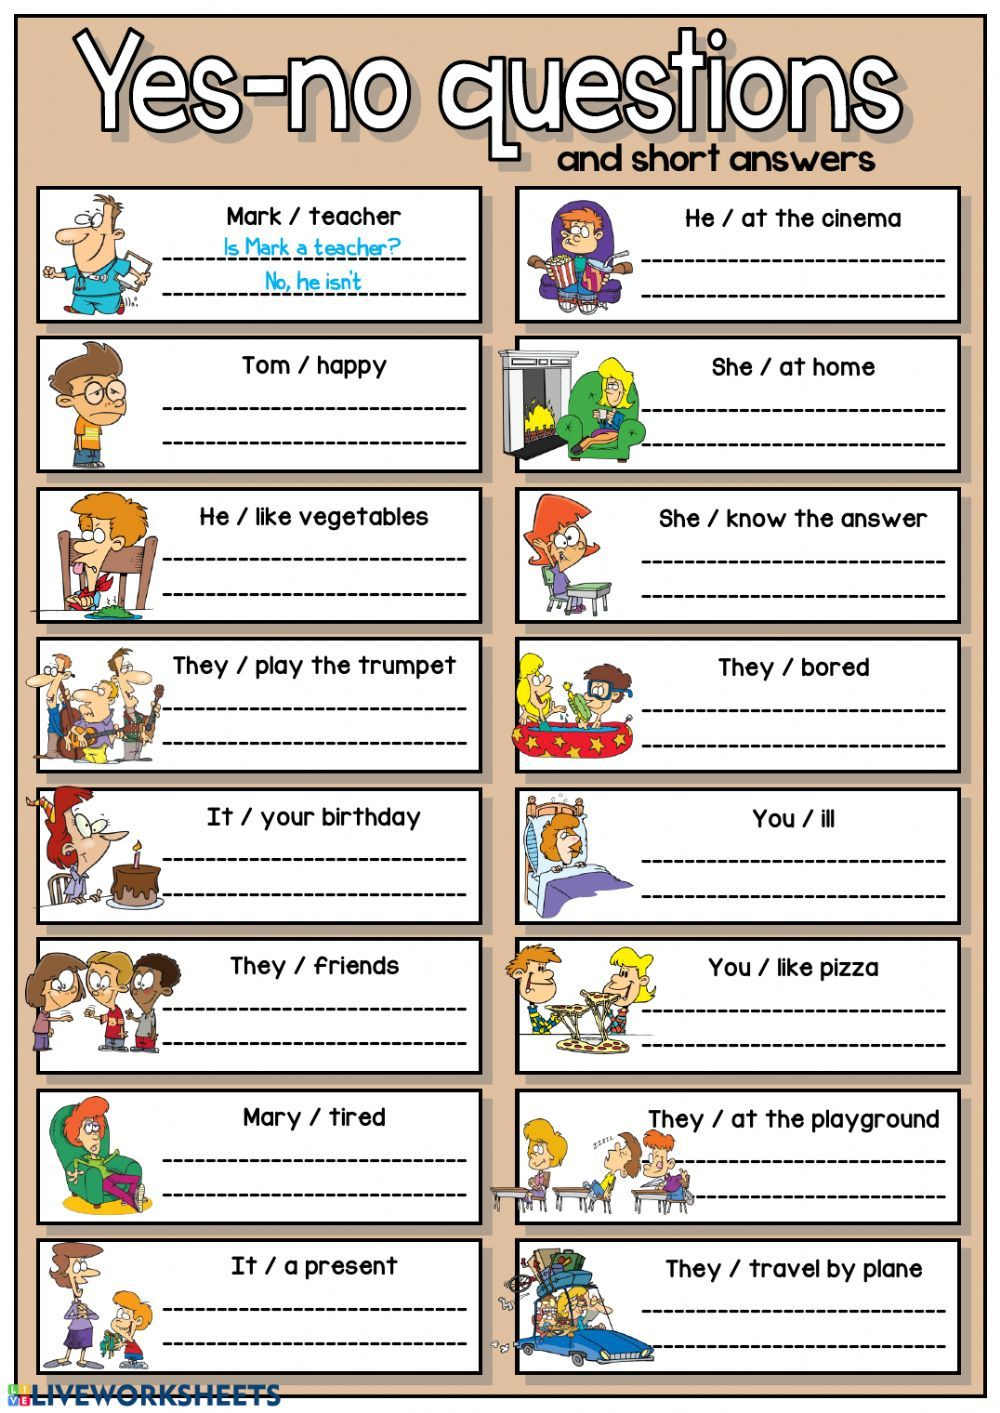 medium resolution of https://cute766.info/present-simple-reading-yes-no-and-wh-questions-worksheet-free-esl-printable-worksheets-made/